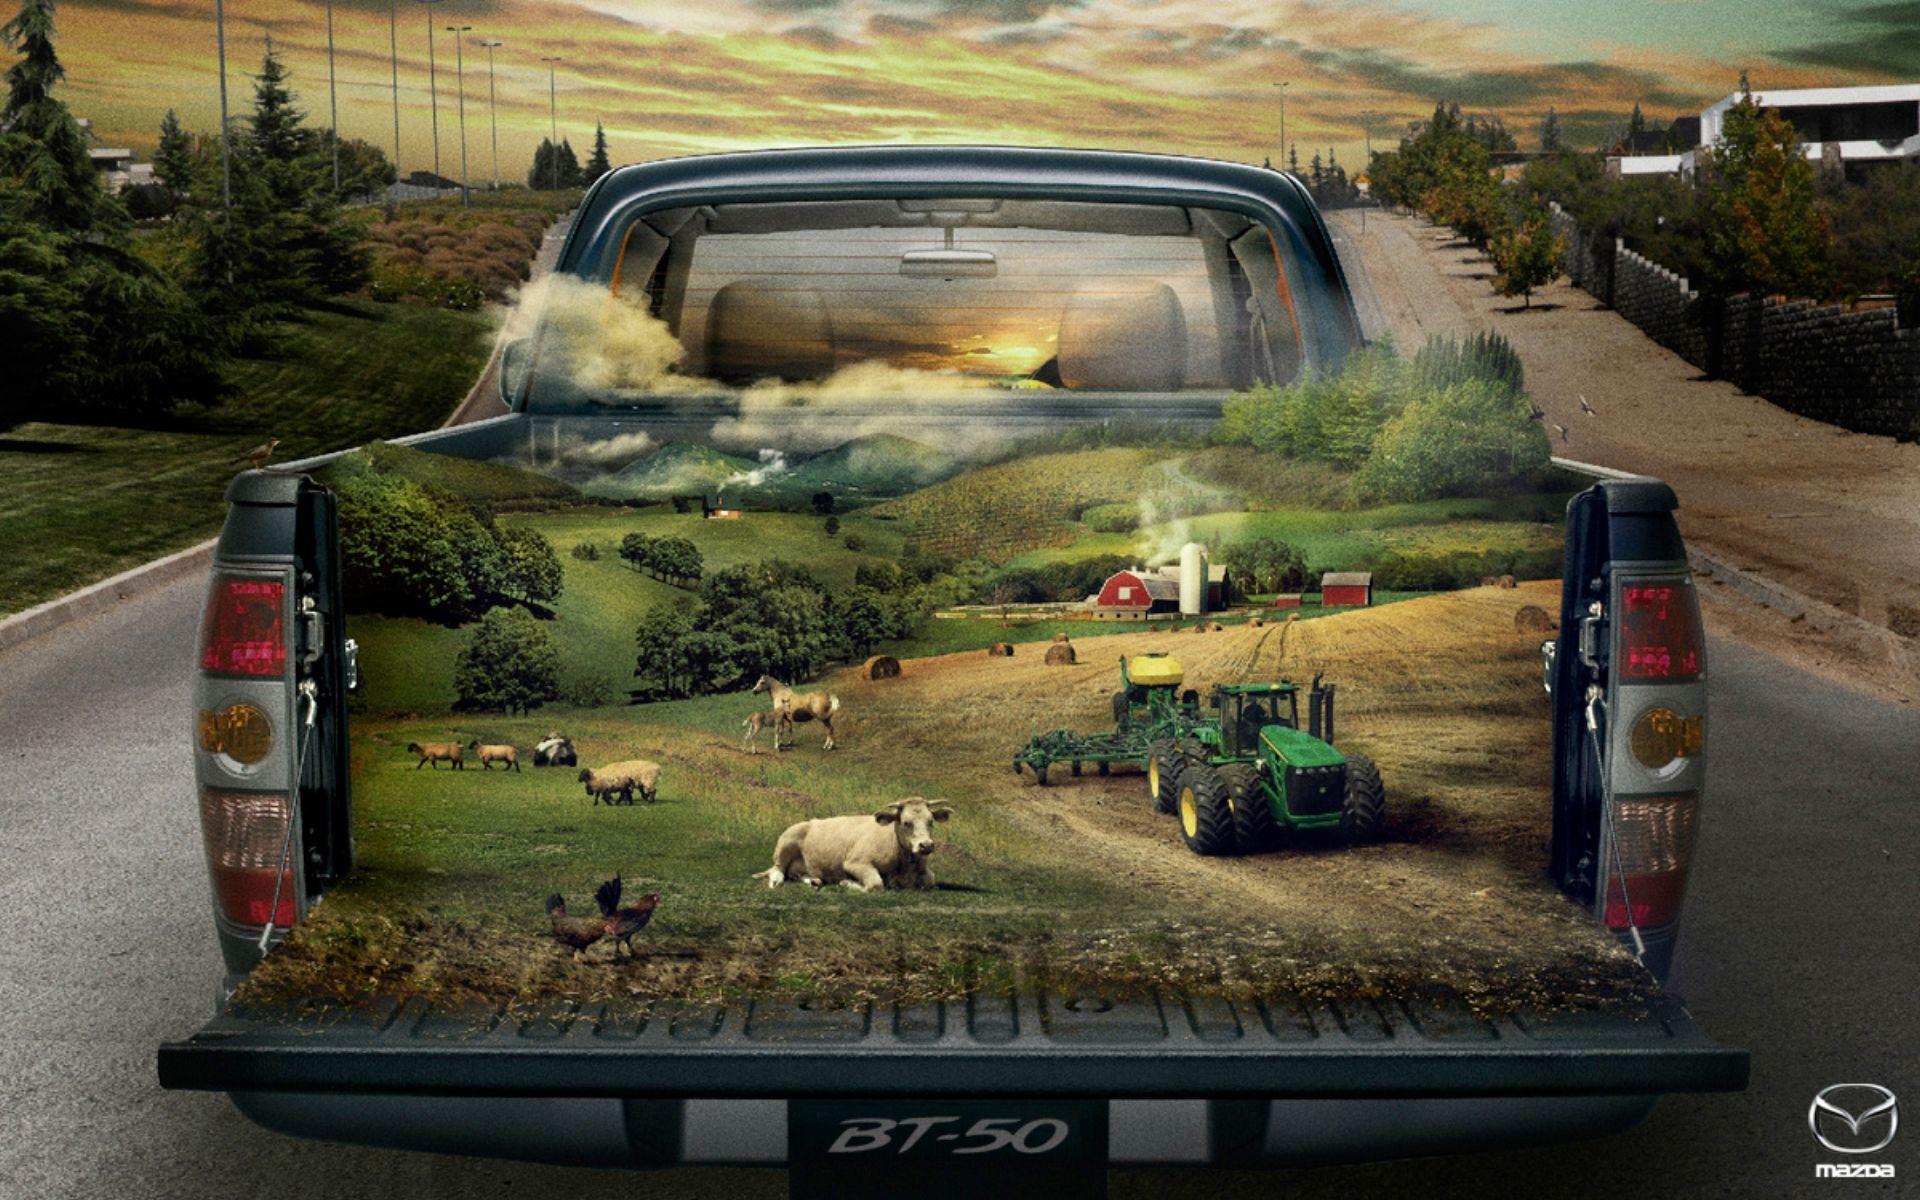 50 Farm Wallpaper Mazda BT 50 Farm iPhone Wallpaper Mazda BT 50 Farm 1920x1200